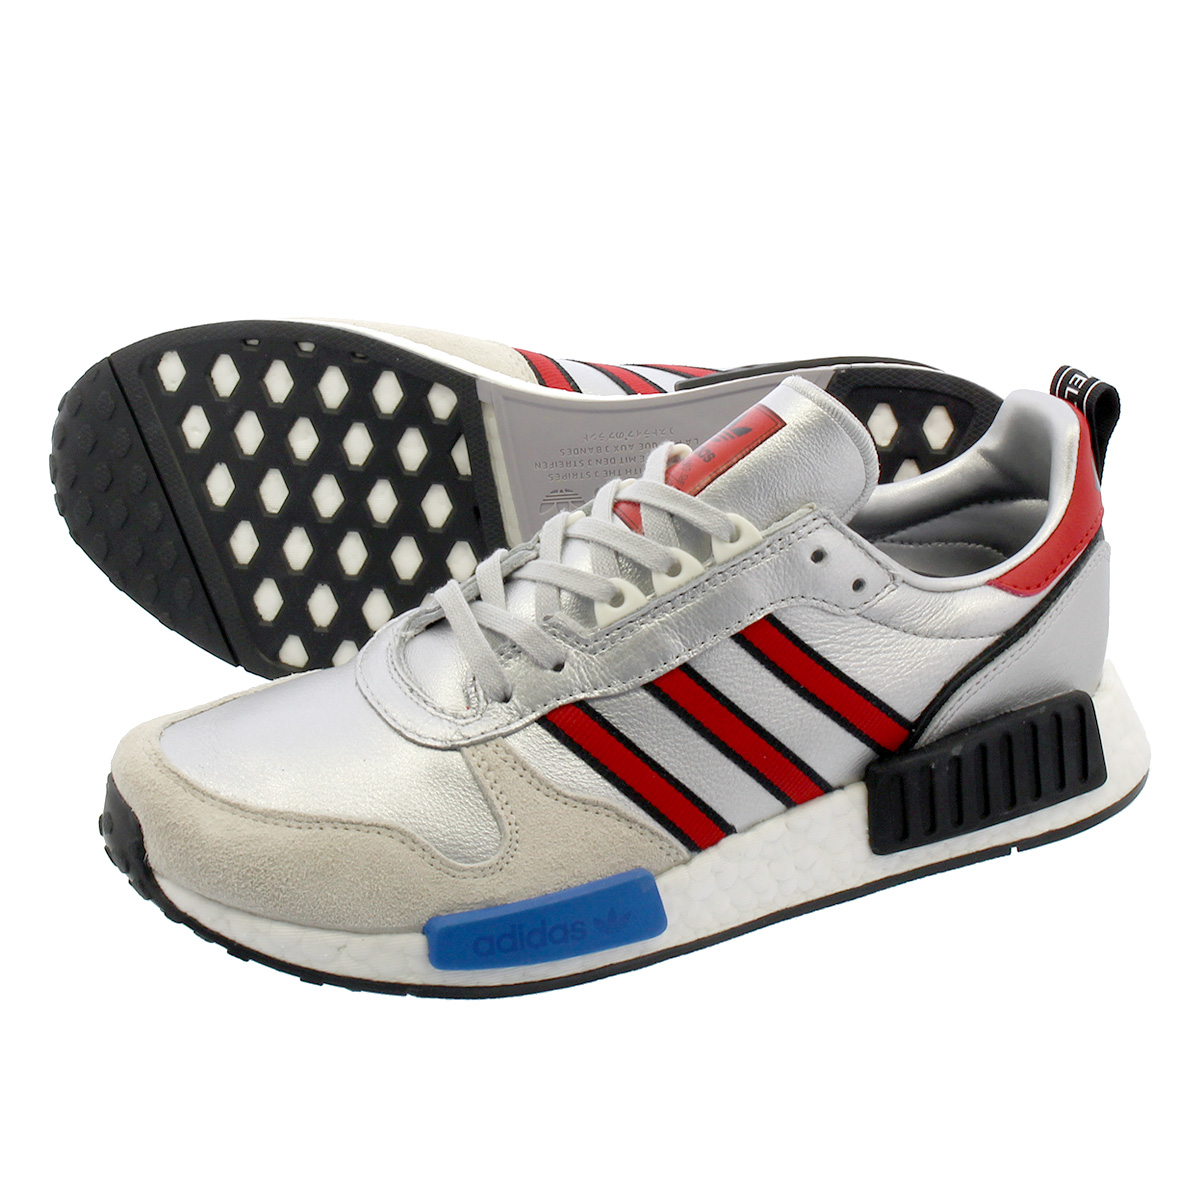 6cb91146a adidas RISINGSTAR x R1 Adidas rising star x R1 SILVER MET COLLEGE  RED RUNNING WHITE